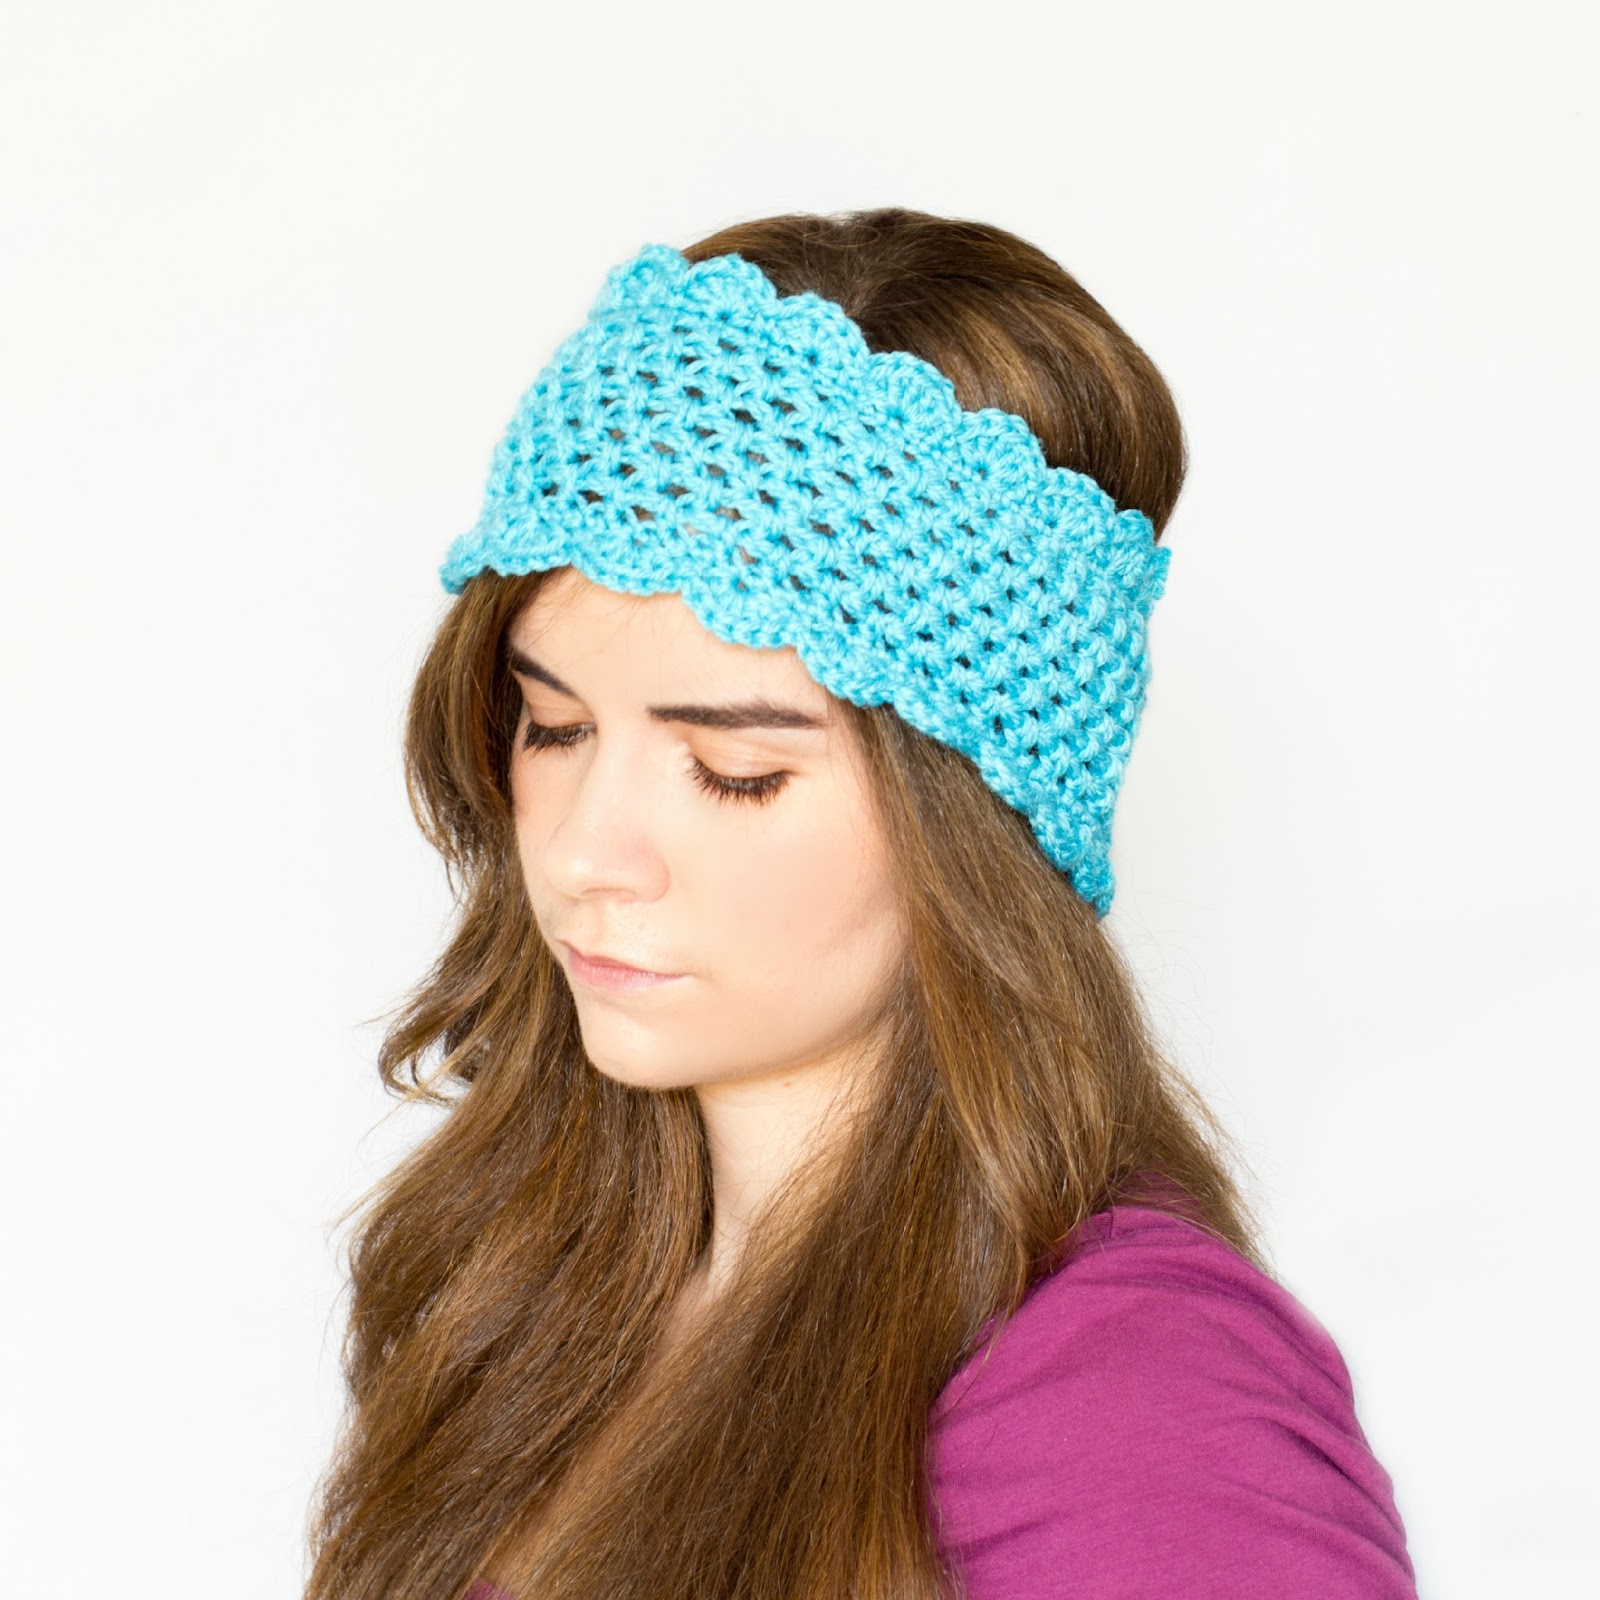 Dainty Scalloped Ear Warmer - Interweave